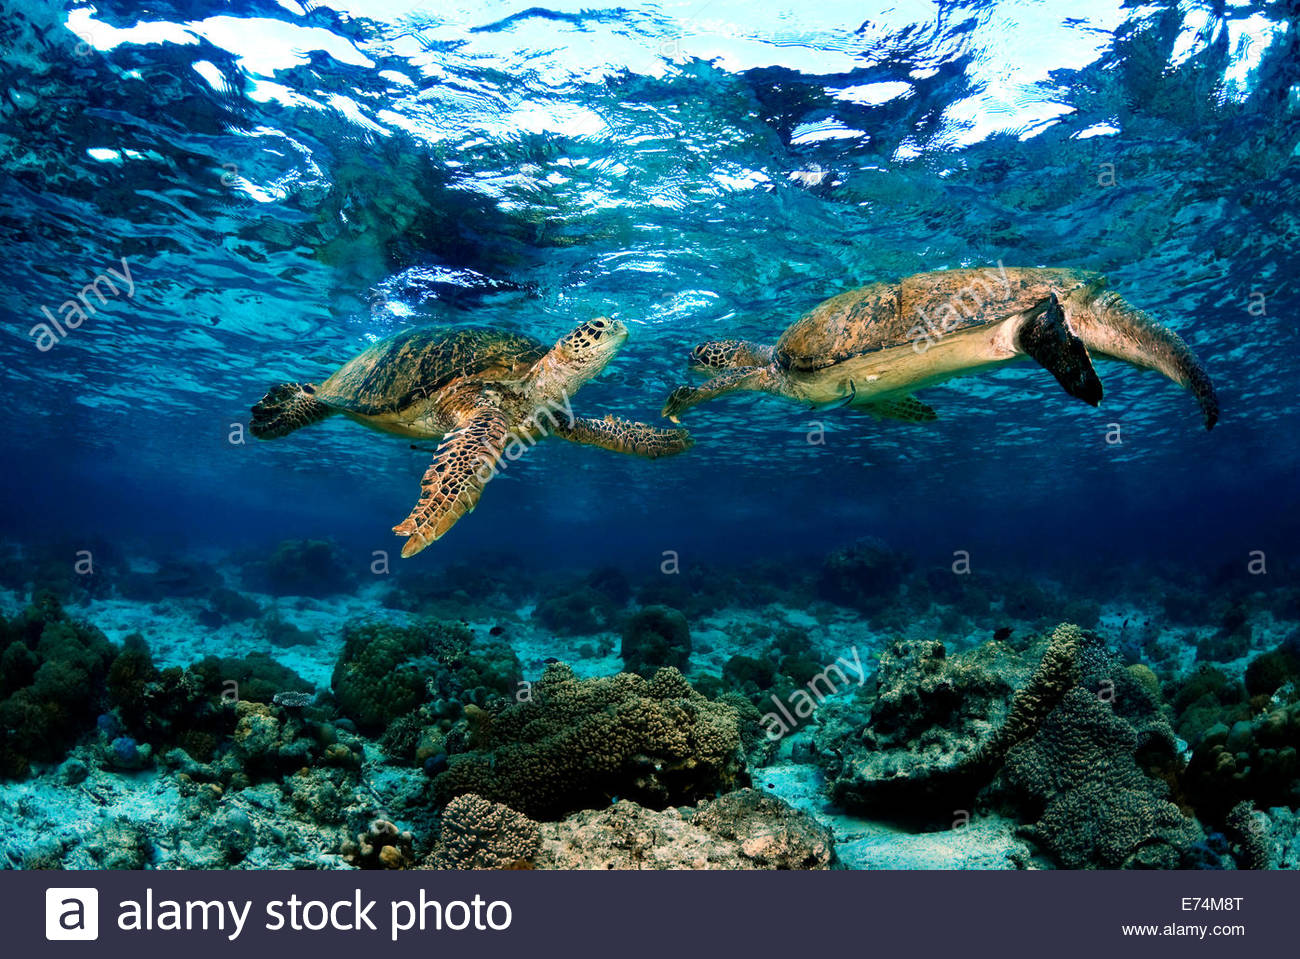 Two green seaturtles Stock Photo